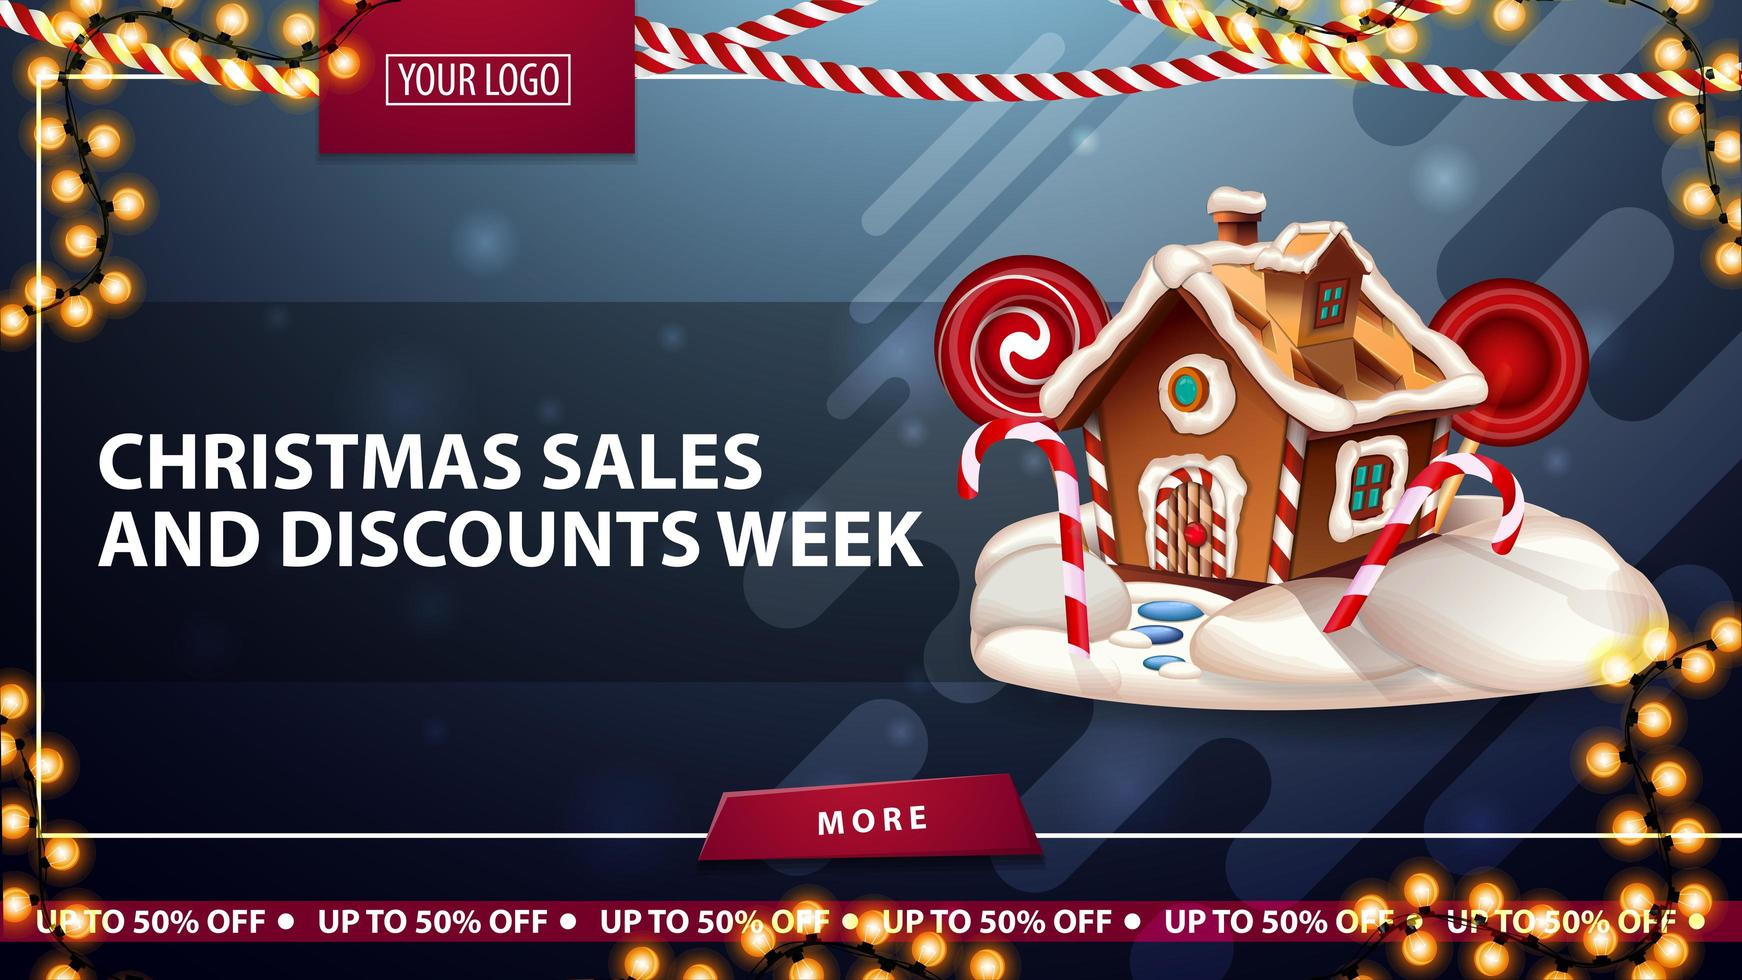 Christmas sales and discount week, blue discount banner with garlands, button, place for your logo and Christmas gingerbread house vector